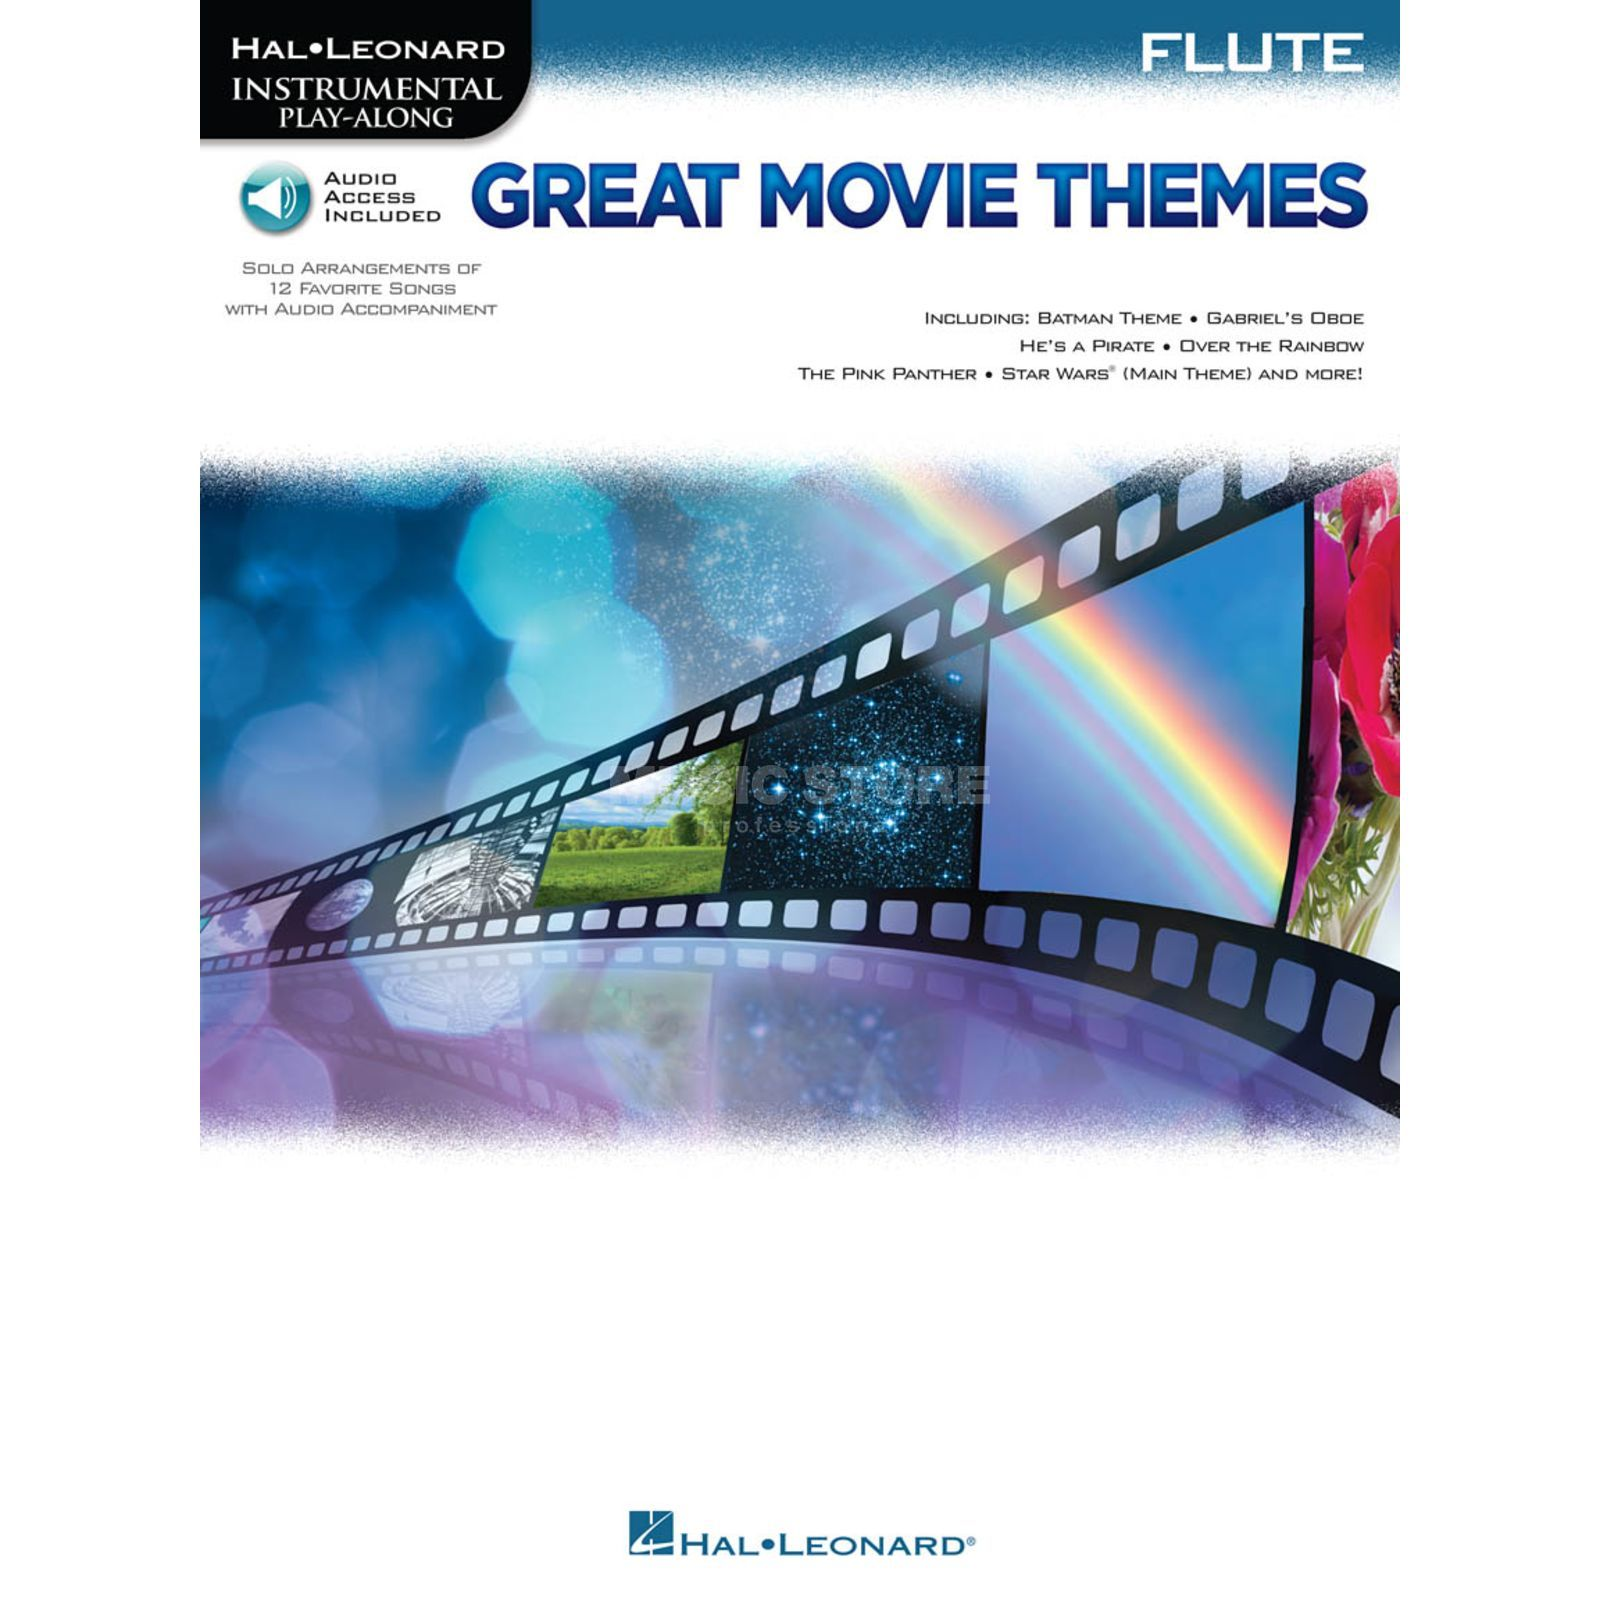 Hal Leonard Instrumental Play-Along: Great Movie Themes - Flute Produktbild